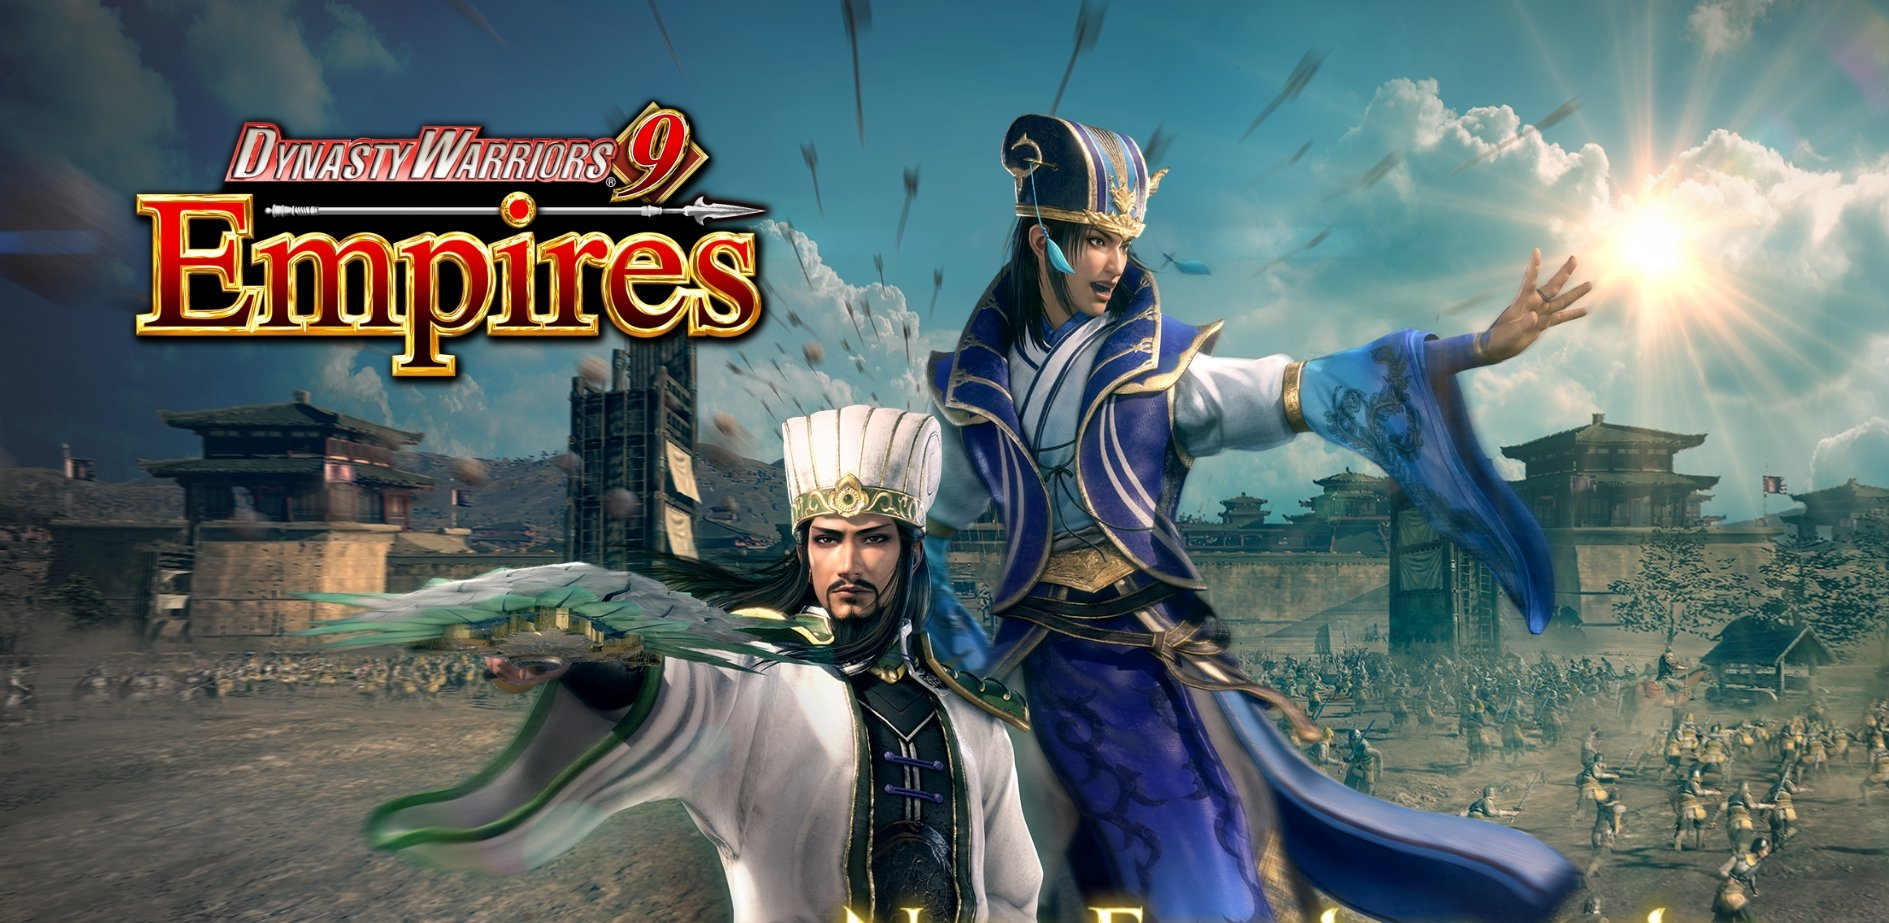 Koei Tecmo Announces Dynasty Warriors 9 Empires For Early 2021